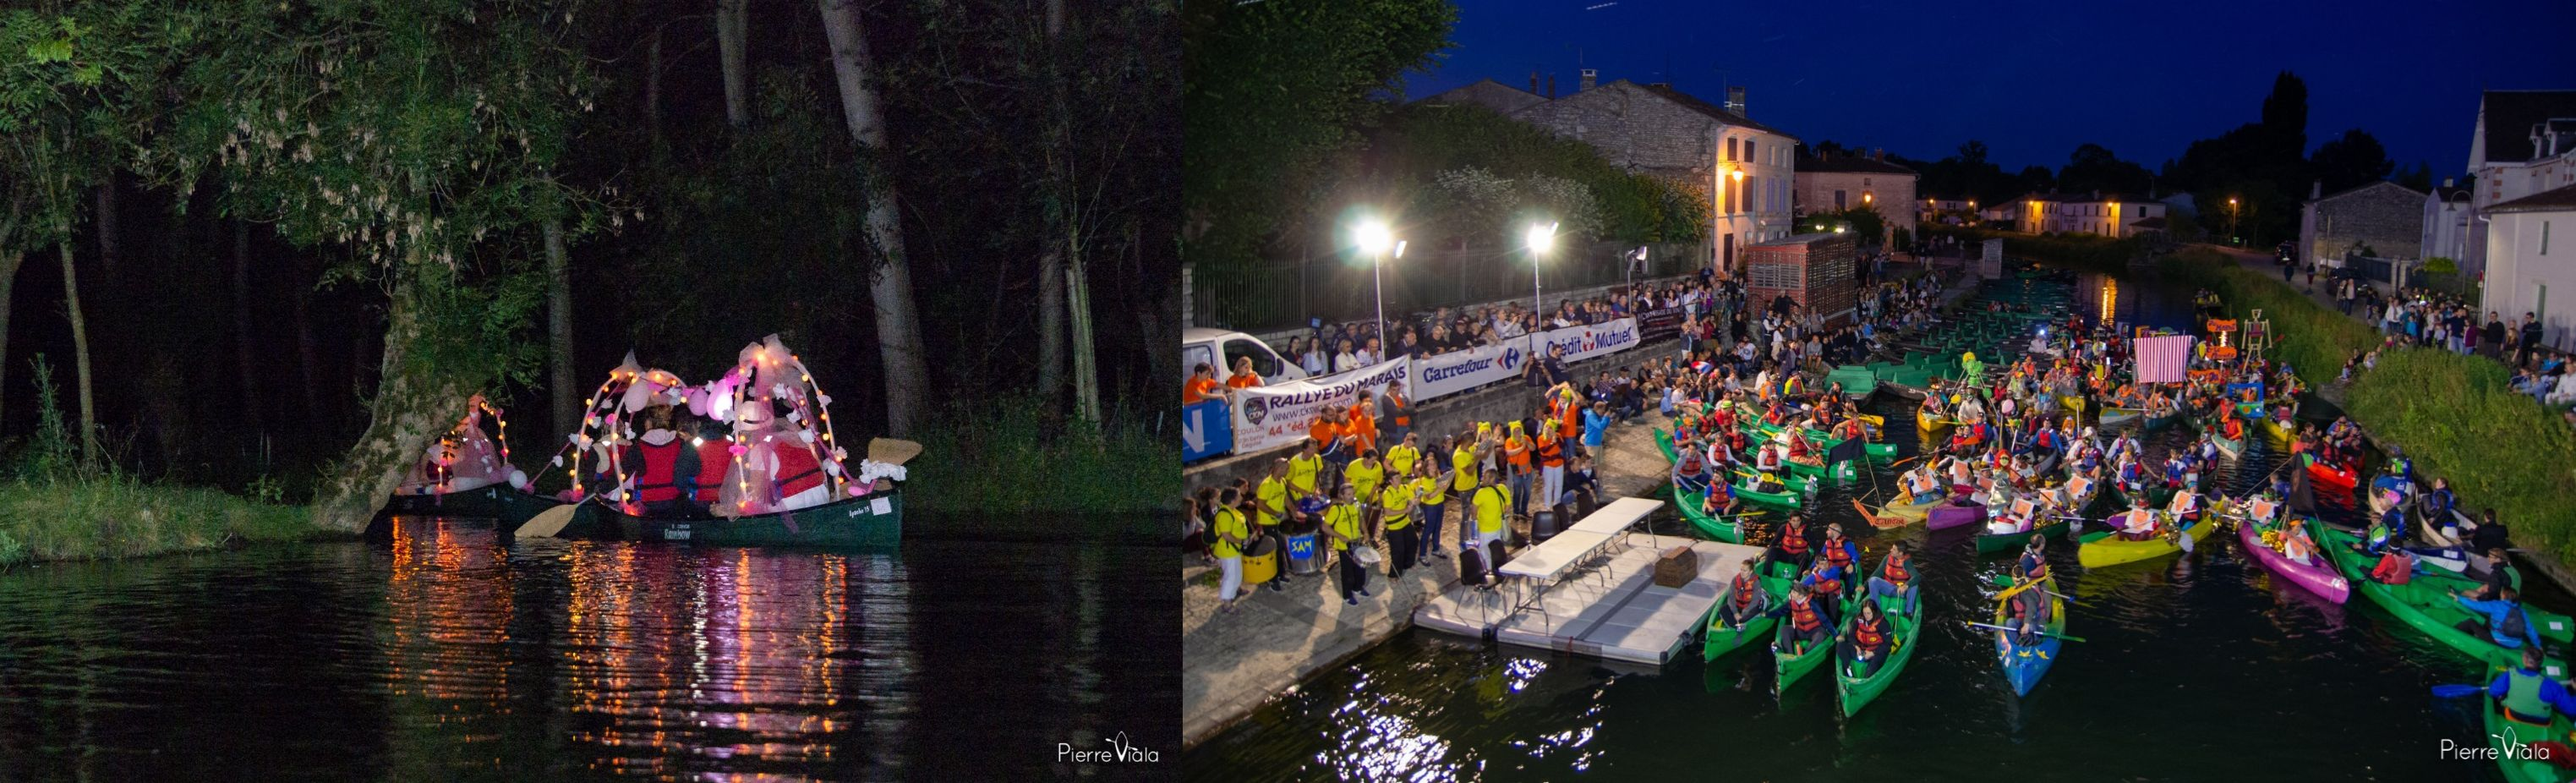 Rallye du Marais, a night-time canoeing event in the Marais Poitevin